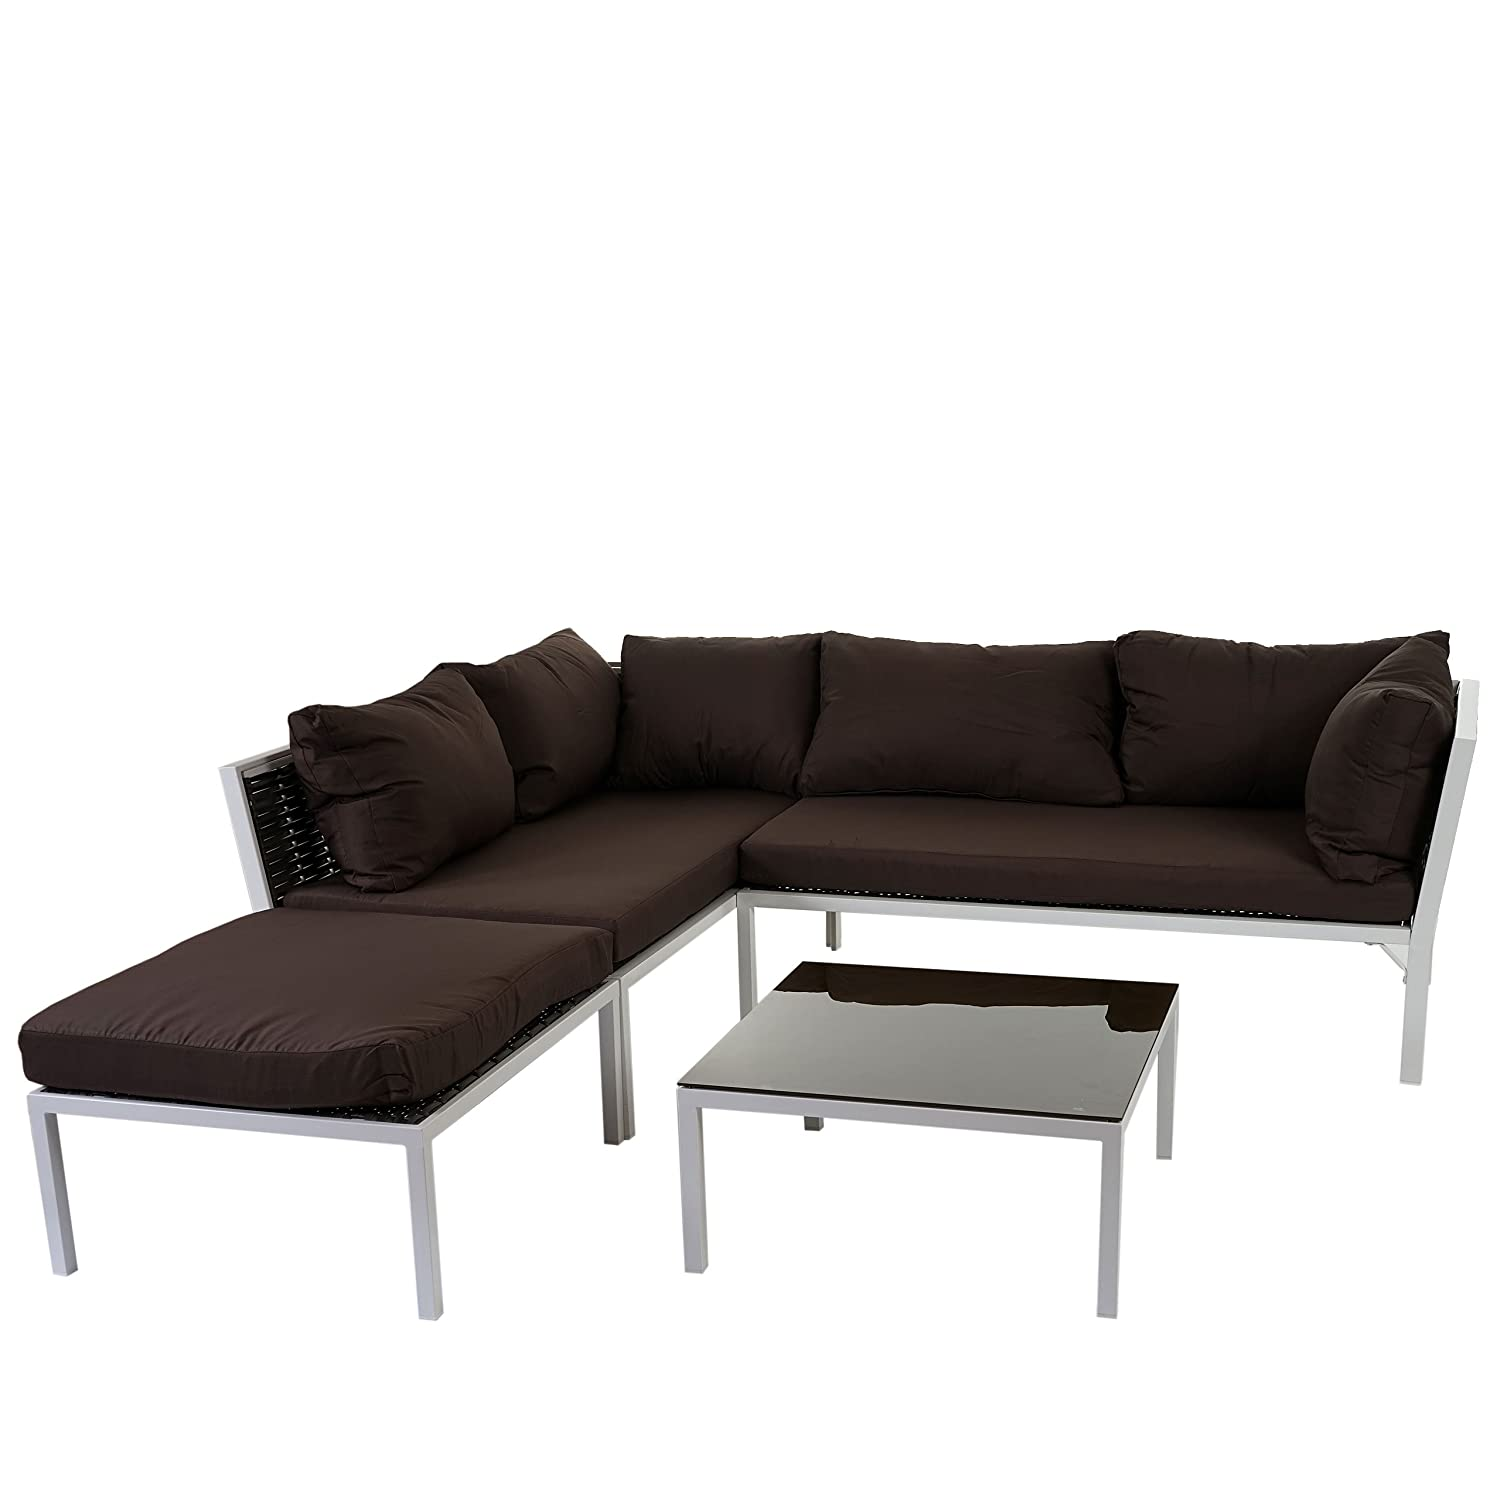 poly rattan sofa garnitur delphi sitzgruppe lounge set alu set 2 kissen braun g nstig. Black Bedroom Furniture Sets. Home Design Ideas